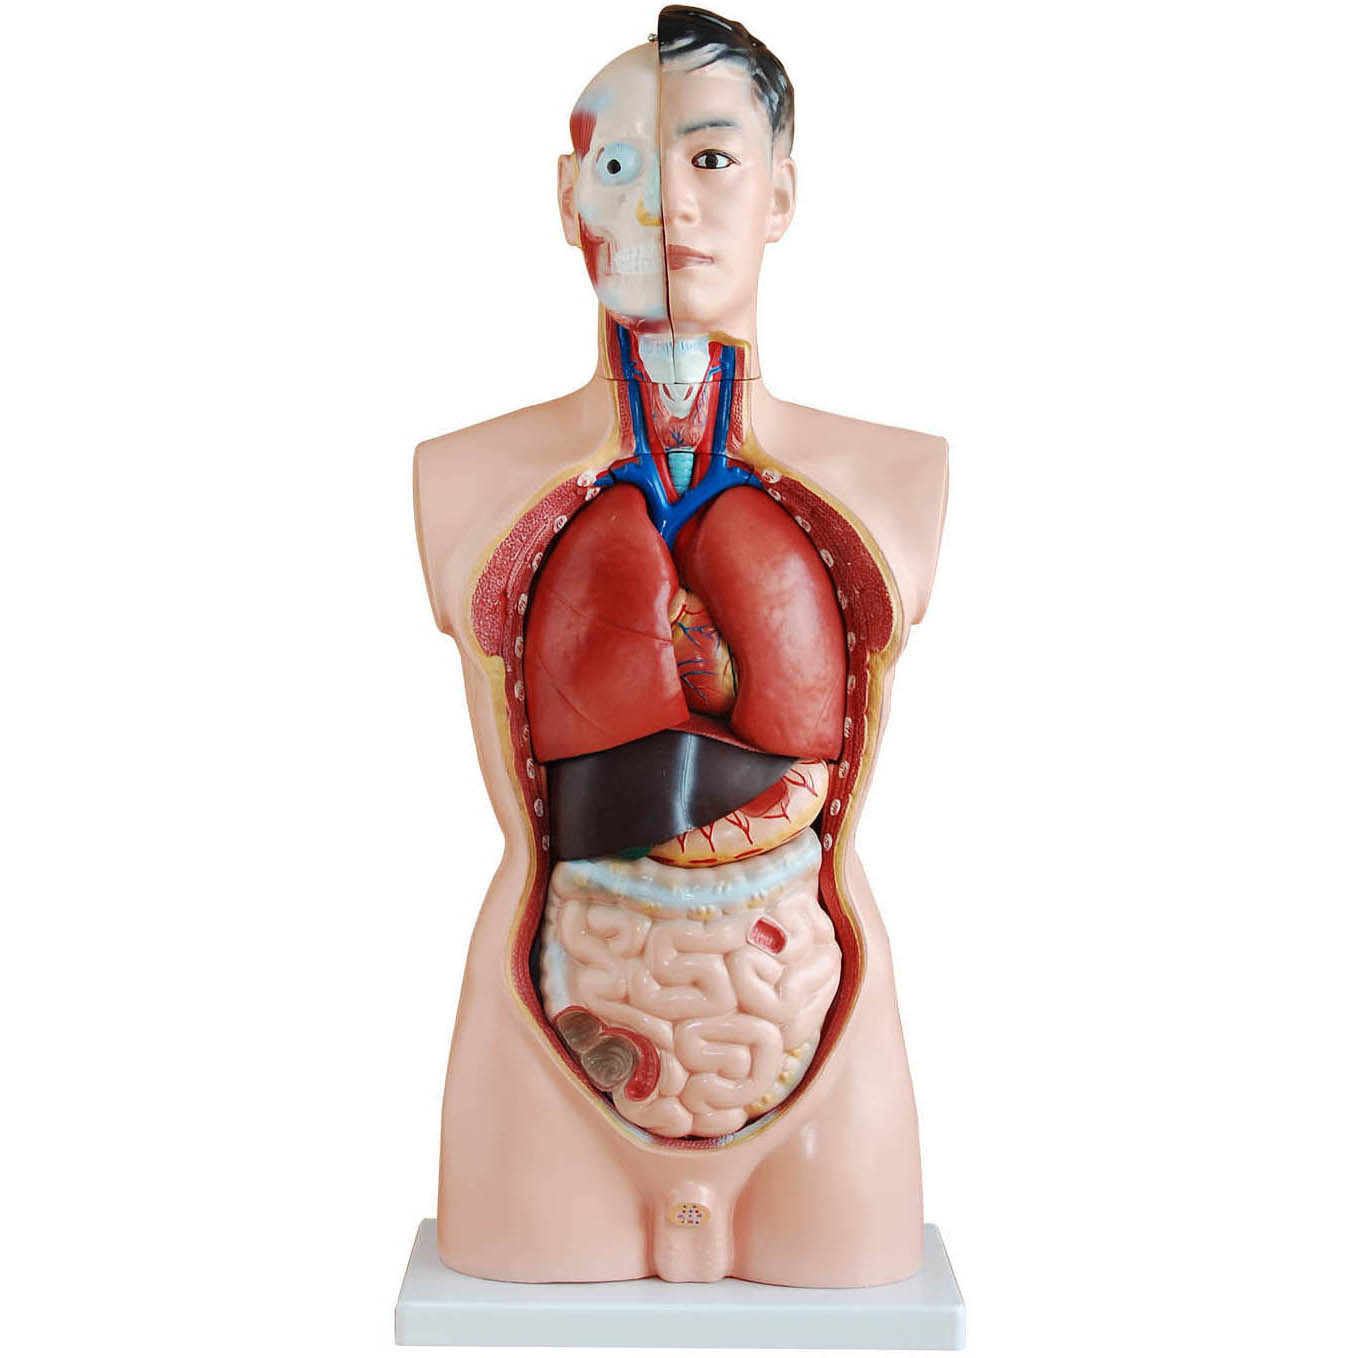 85cm Tall Human Anatomical Male Torso Model | Torso Models – Store ...